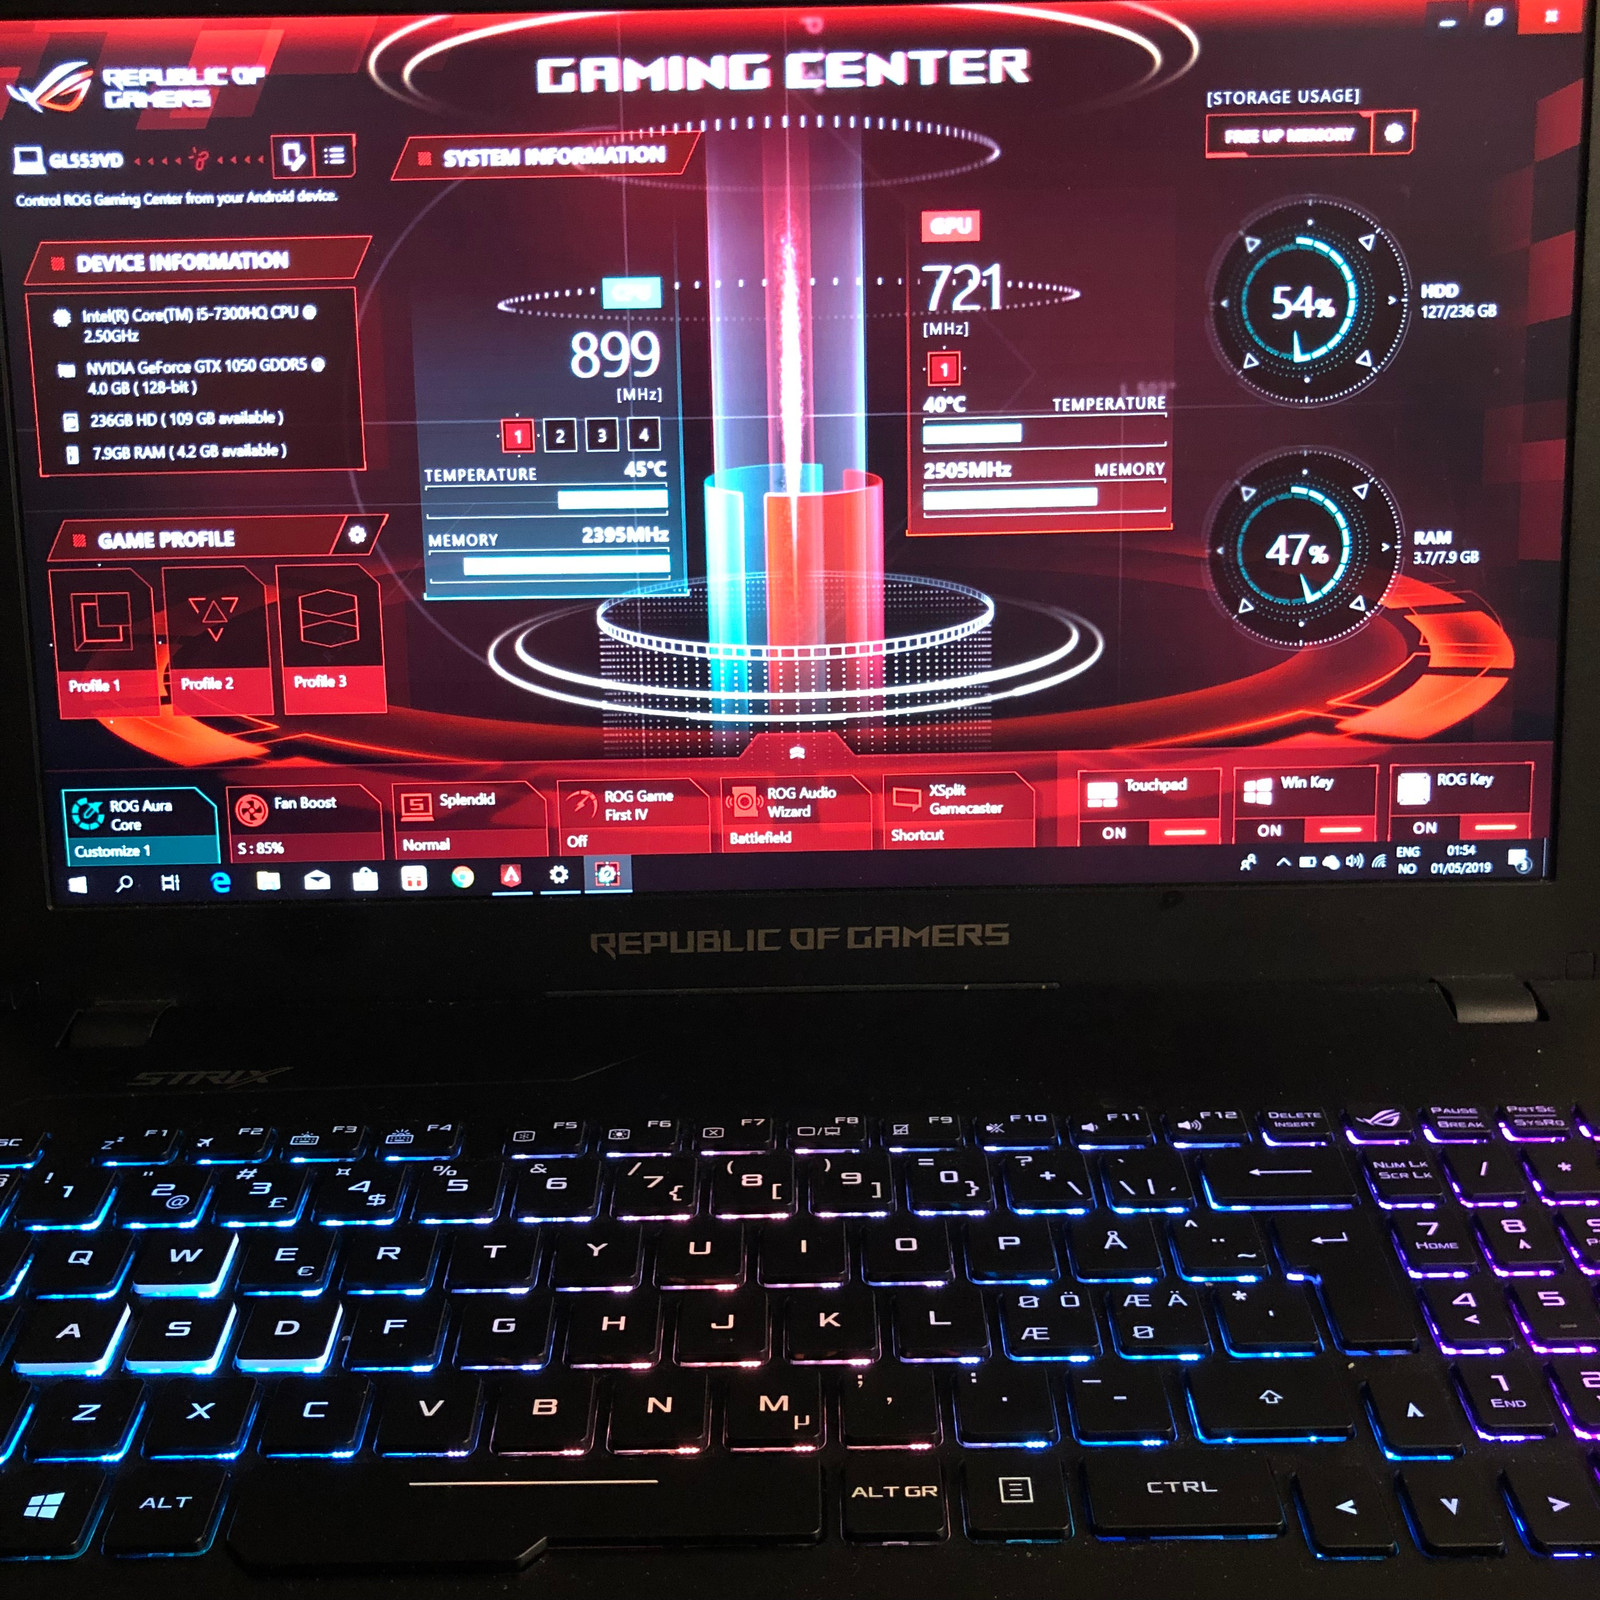 Asus Rog Gaming Center Not Working